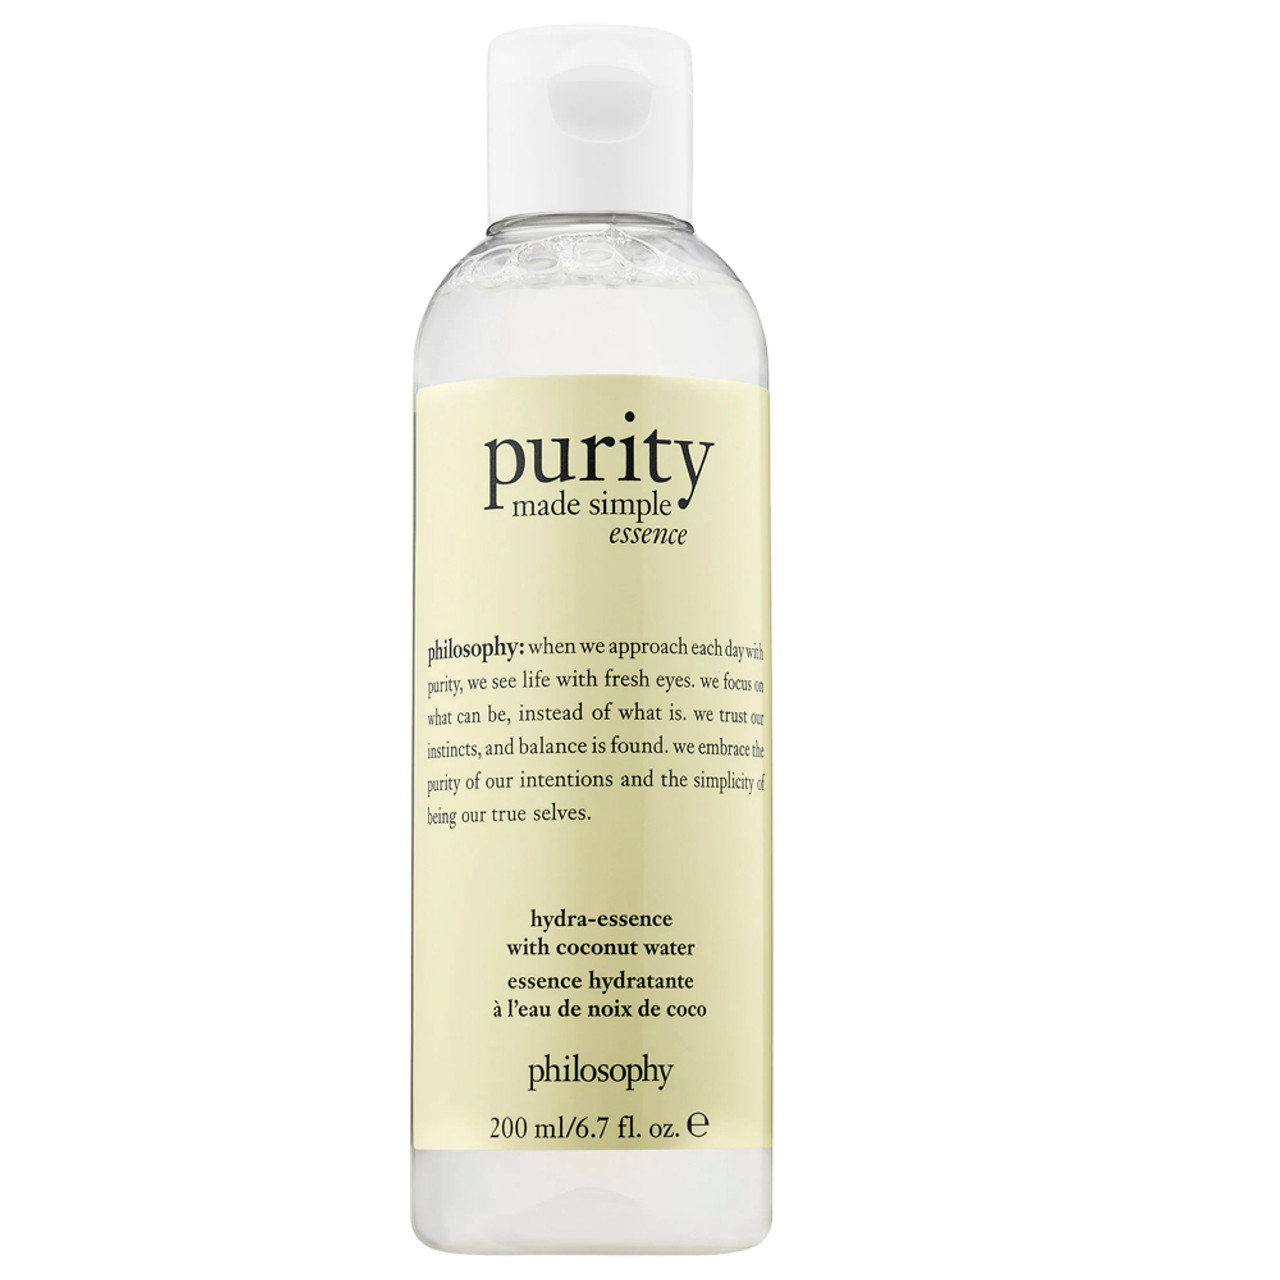 philosophy Purity Made Simple Hydra-Essence with Coconut Water